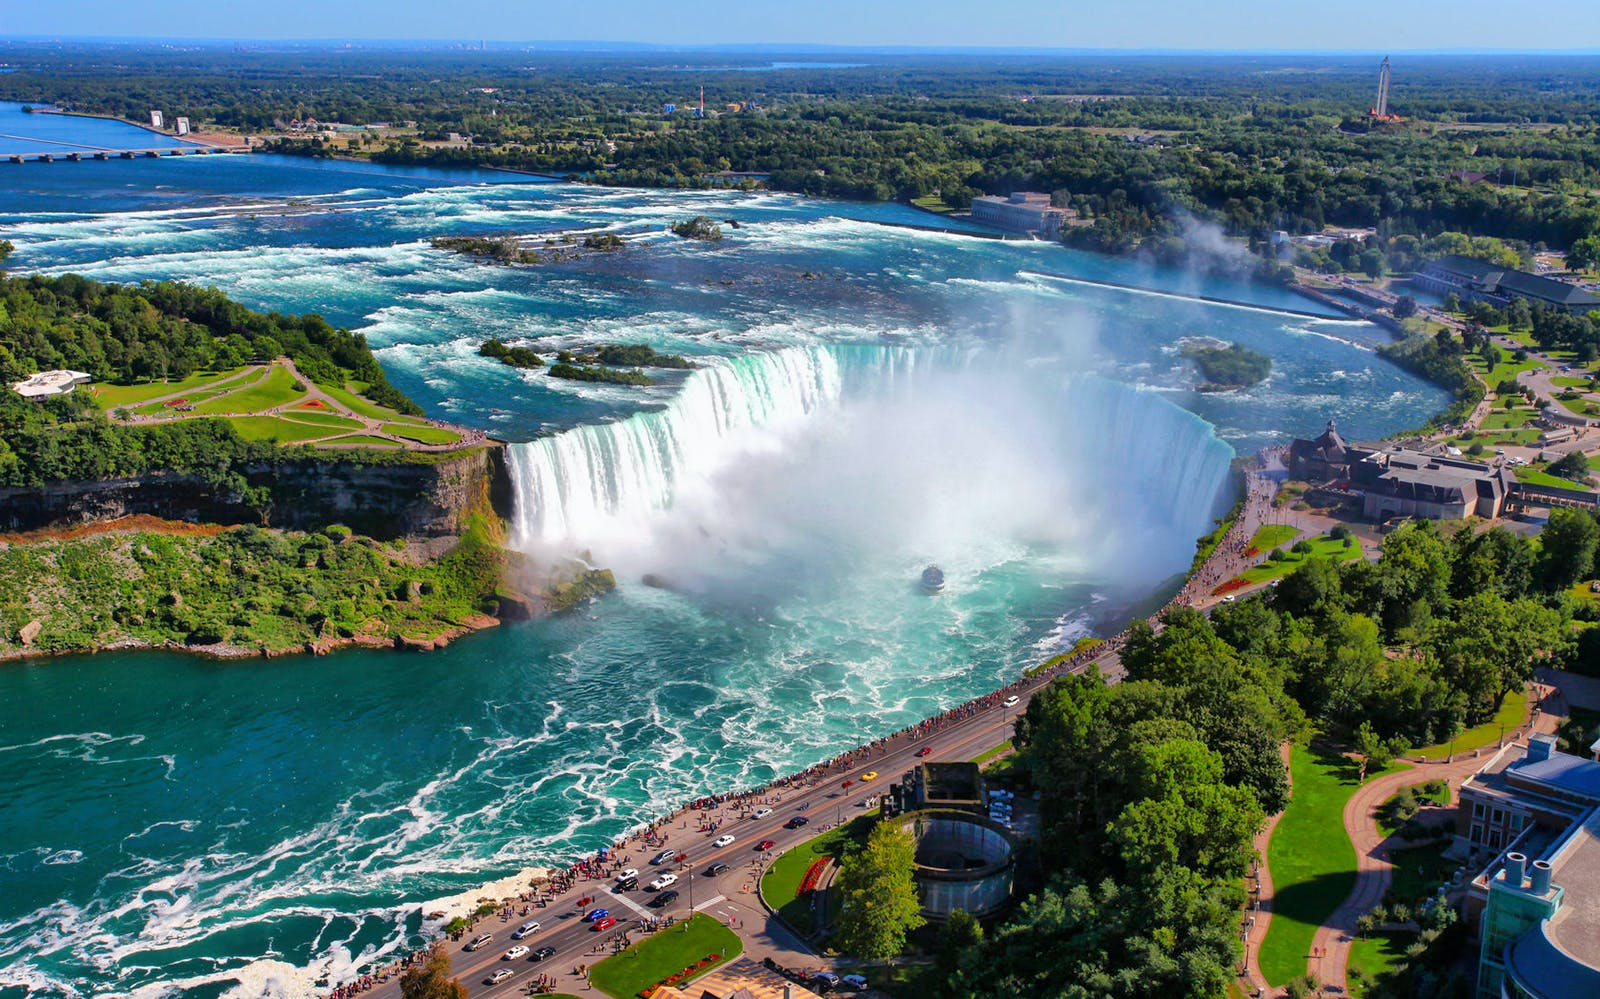 New York To Niagara Falls Day Trip | Discover The Greatest Falls In The World